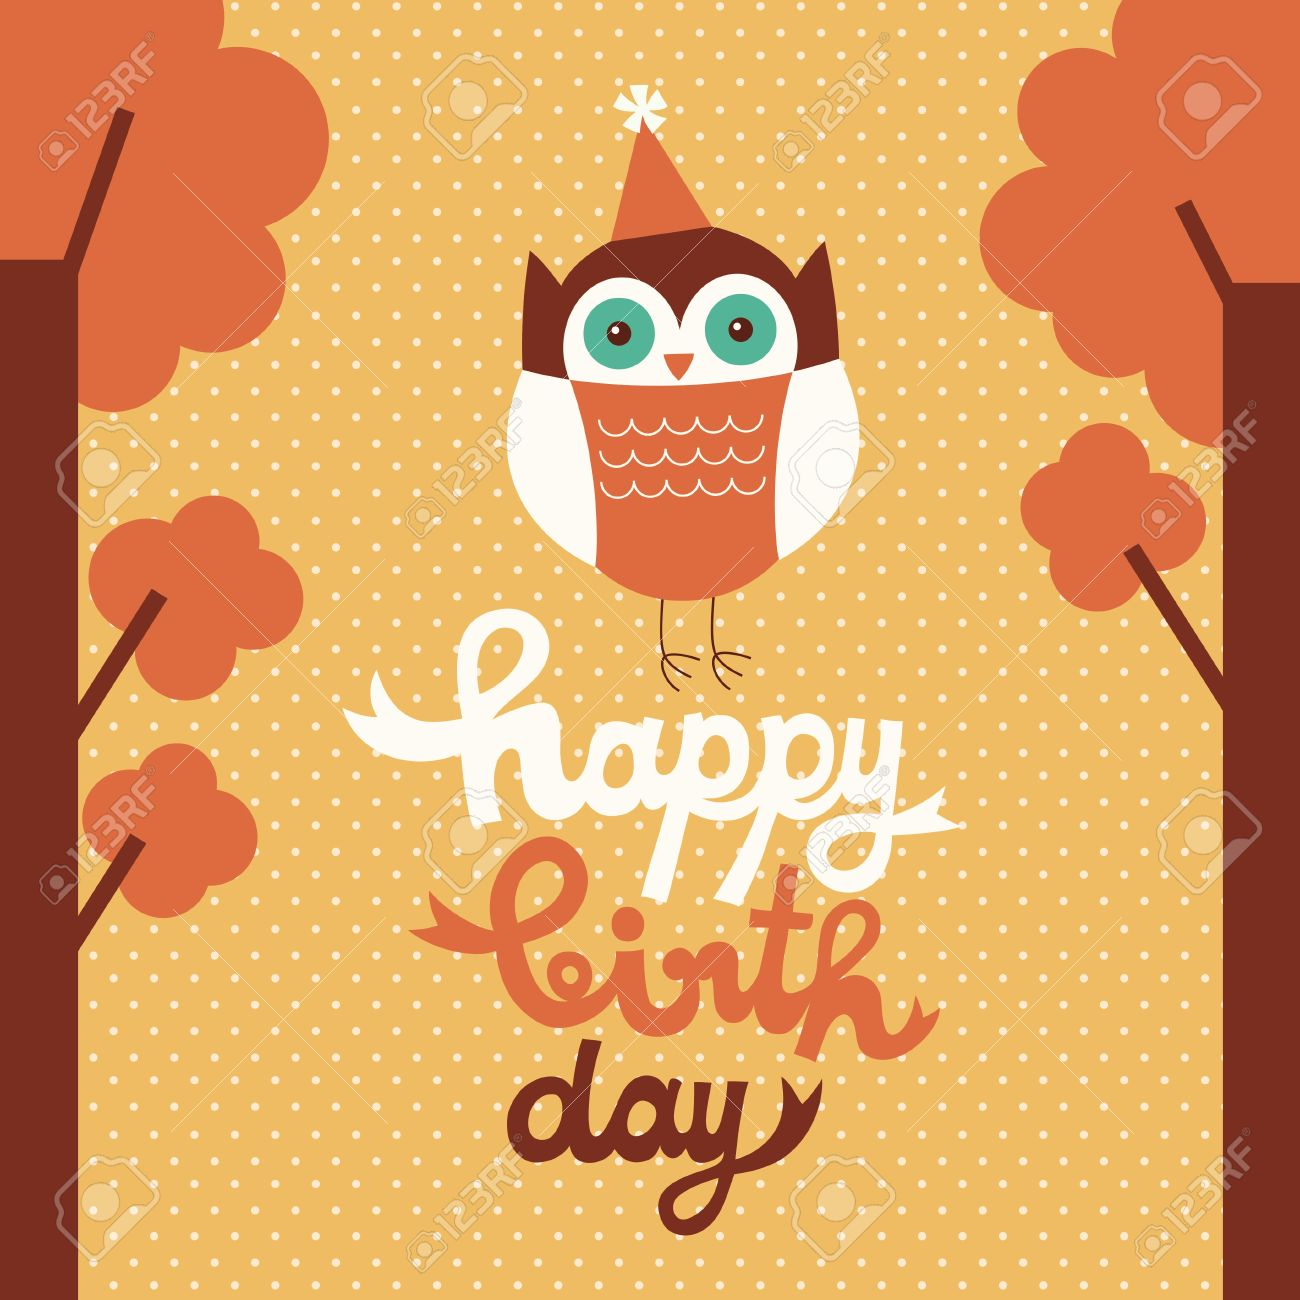 happy owl birthday card design. royalty free cliparts, vectors, Birthday card